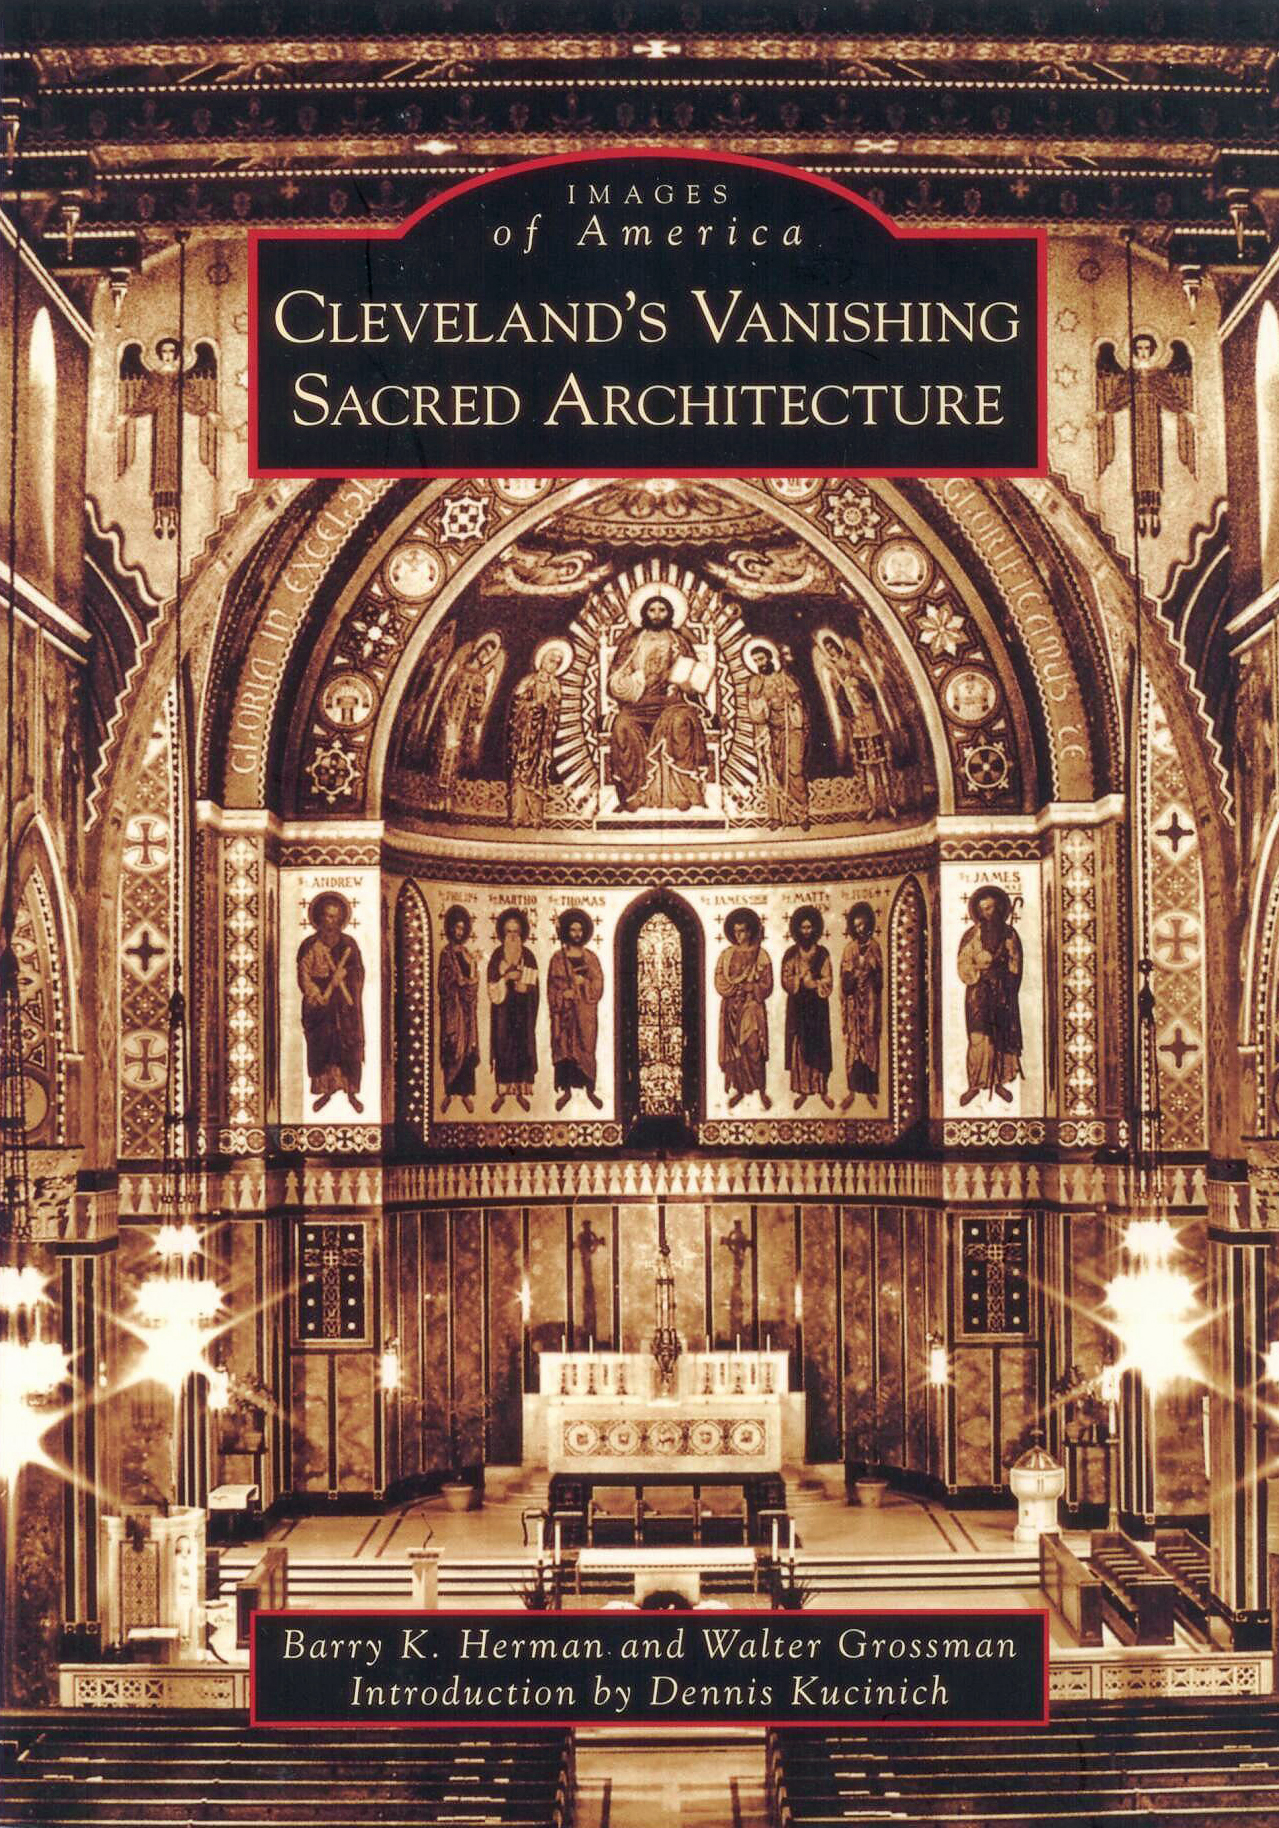 Cleveland's Vanishing Sacred Architecture by Barry K. Herman